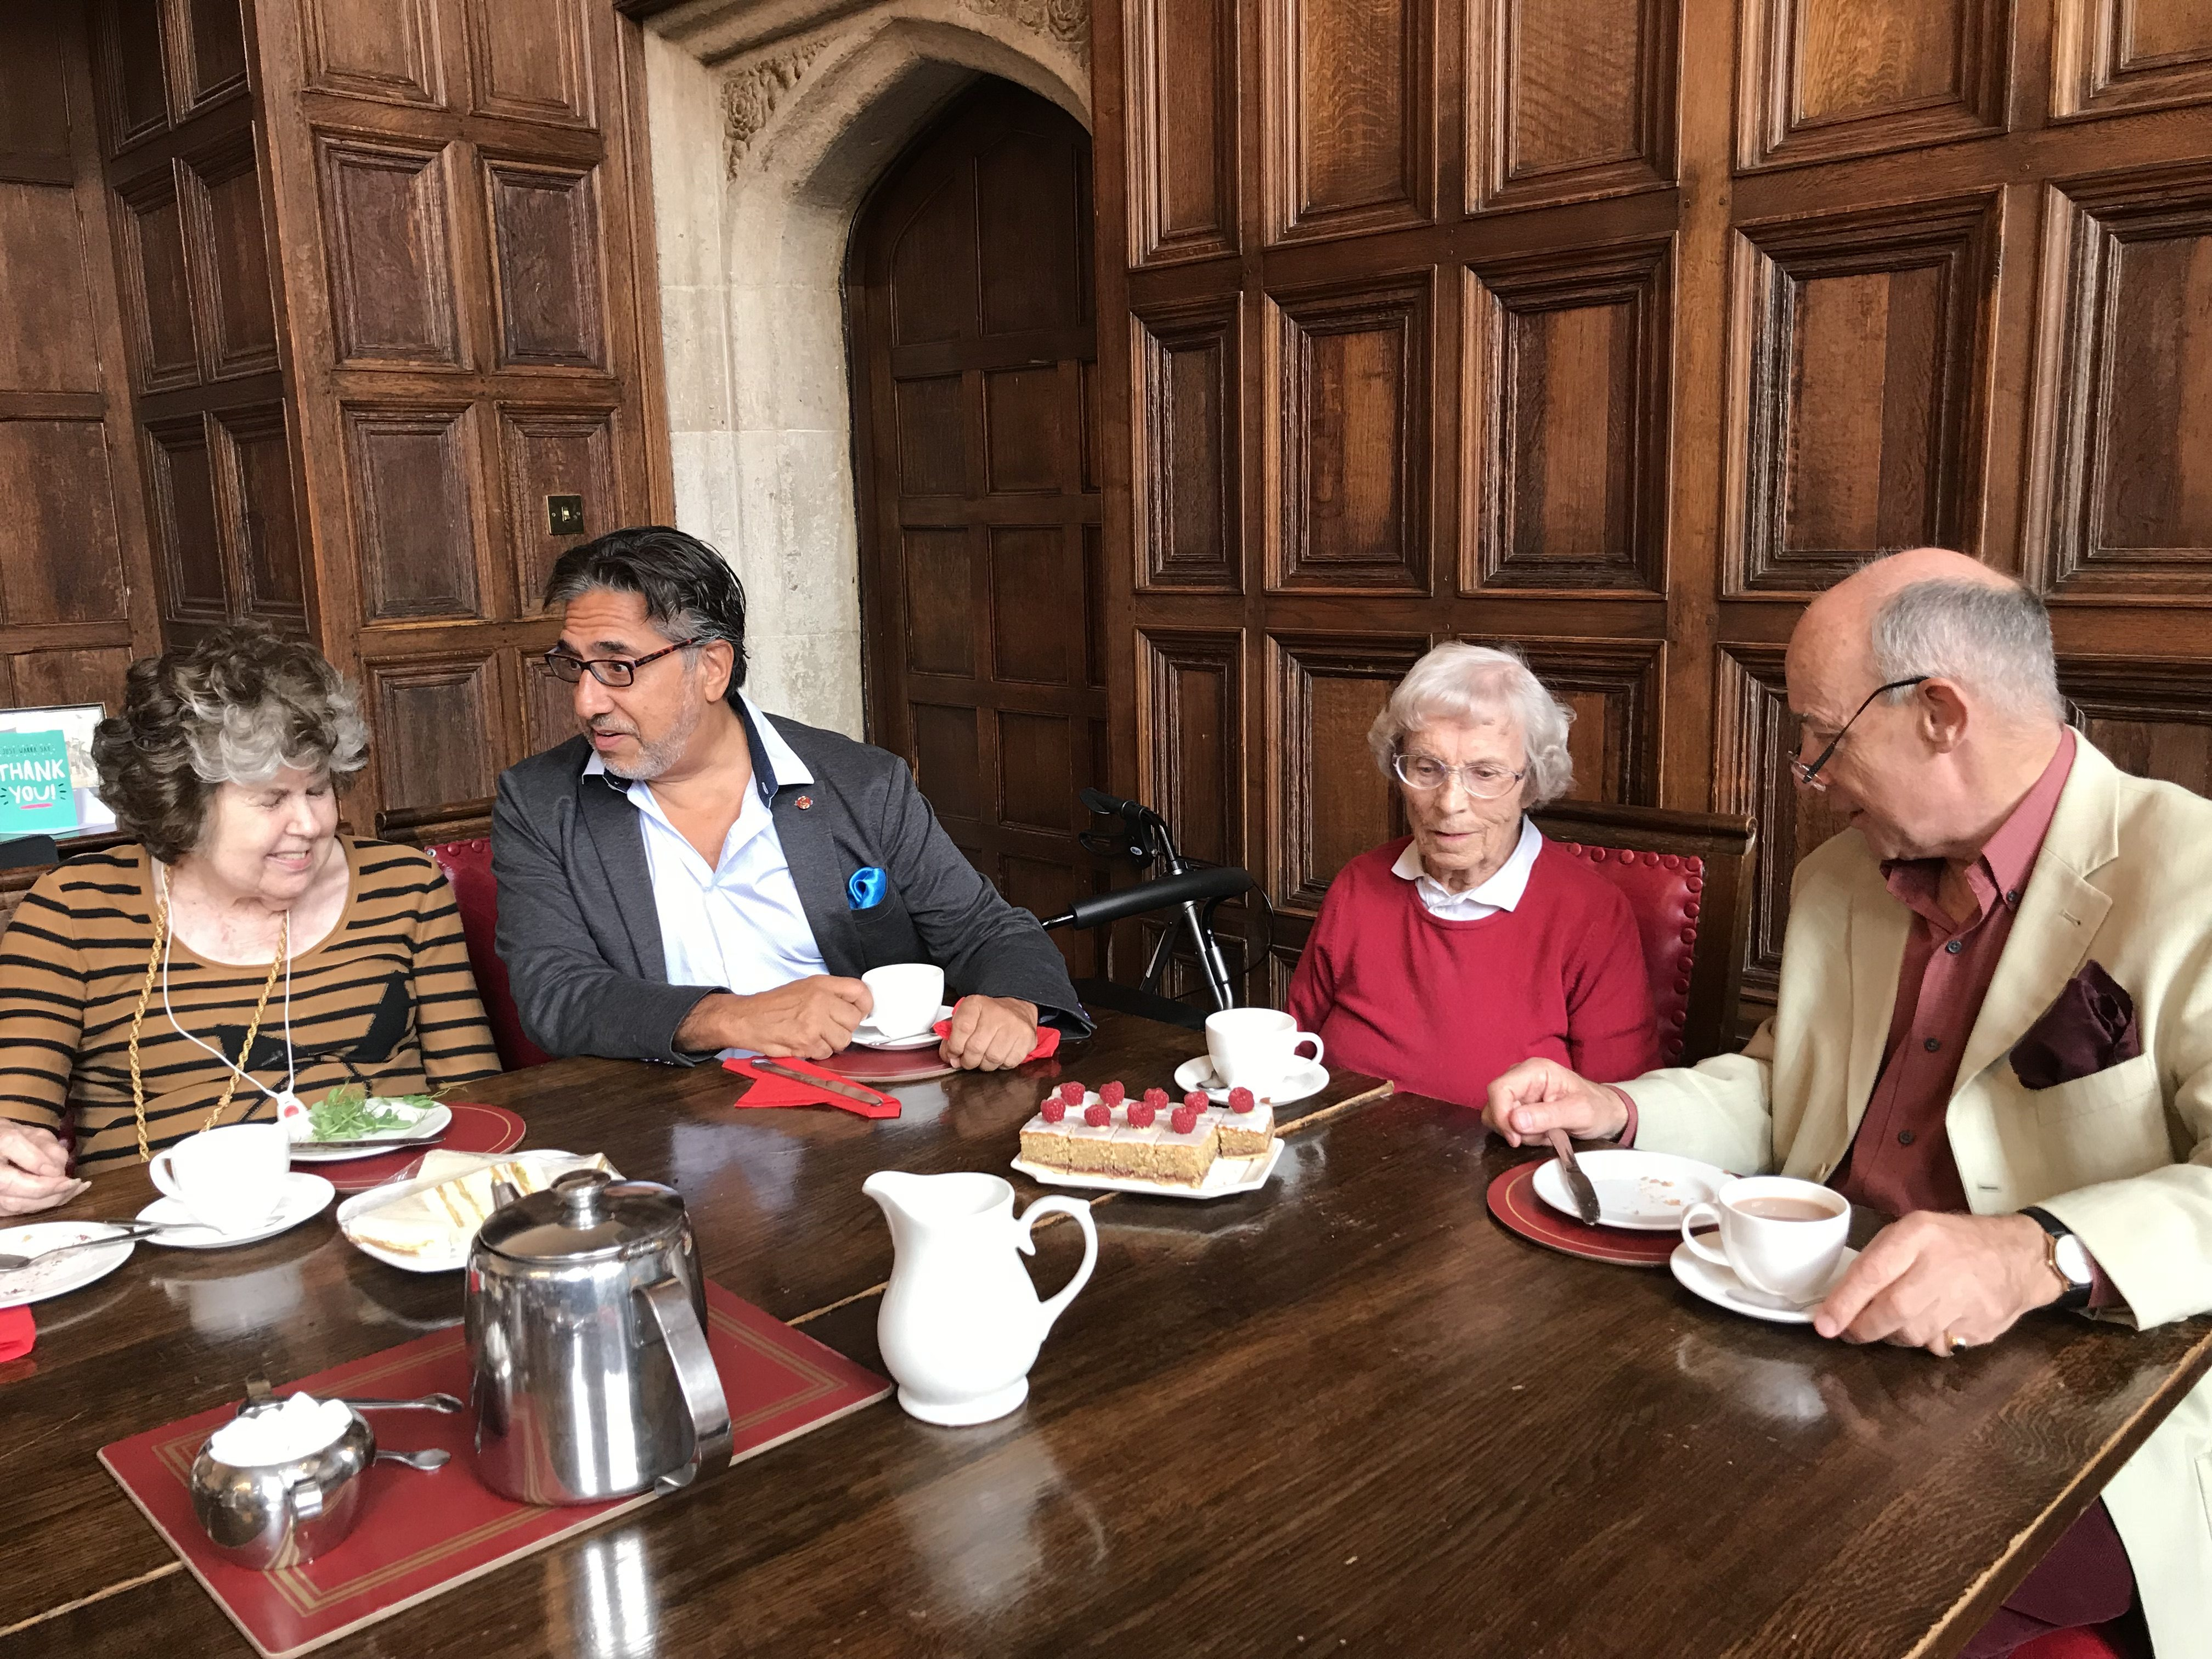 Brothers at tea in th Great Hall